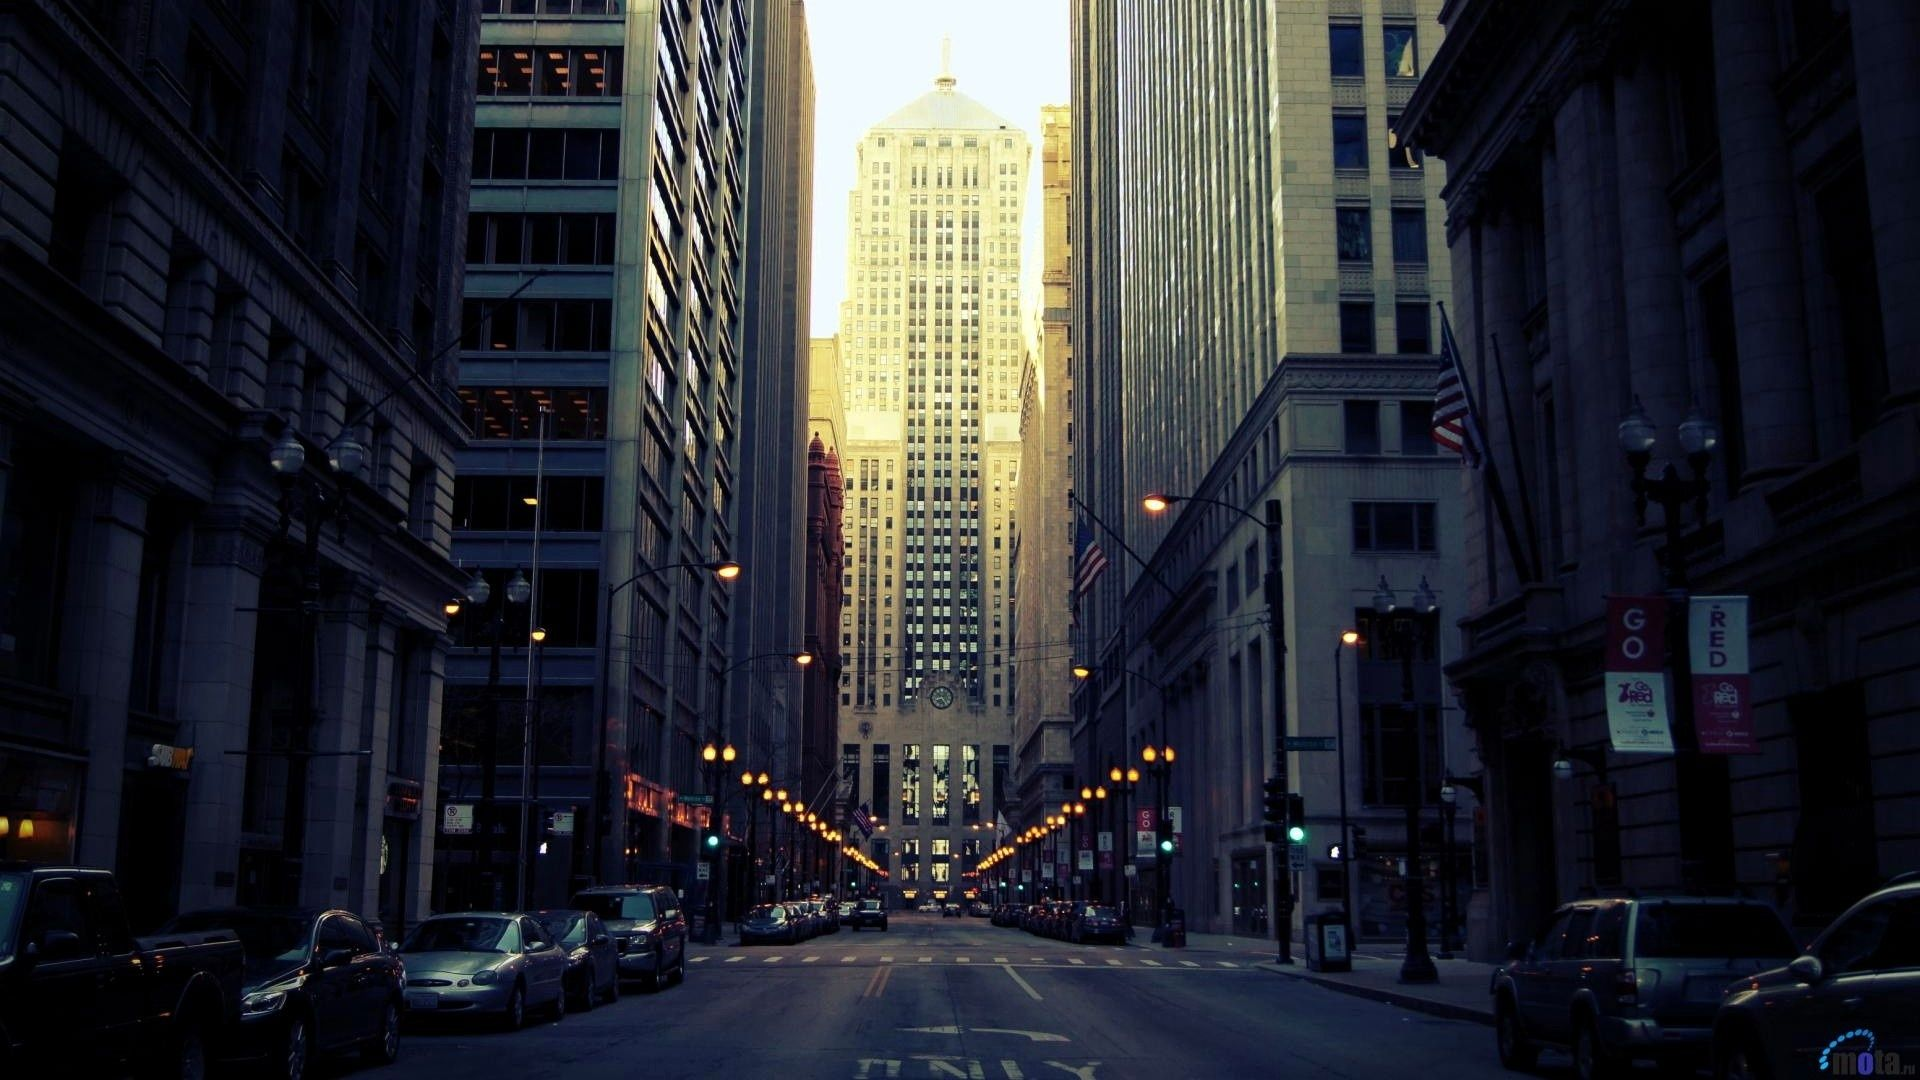 Chicago Street Hd Wallpaper Chicago Buildings Chicago